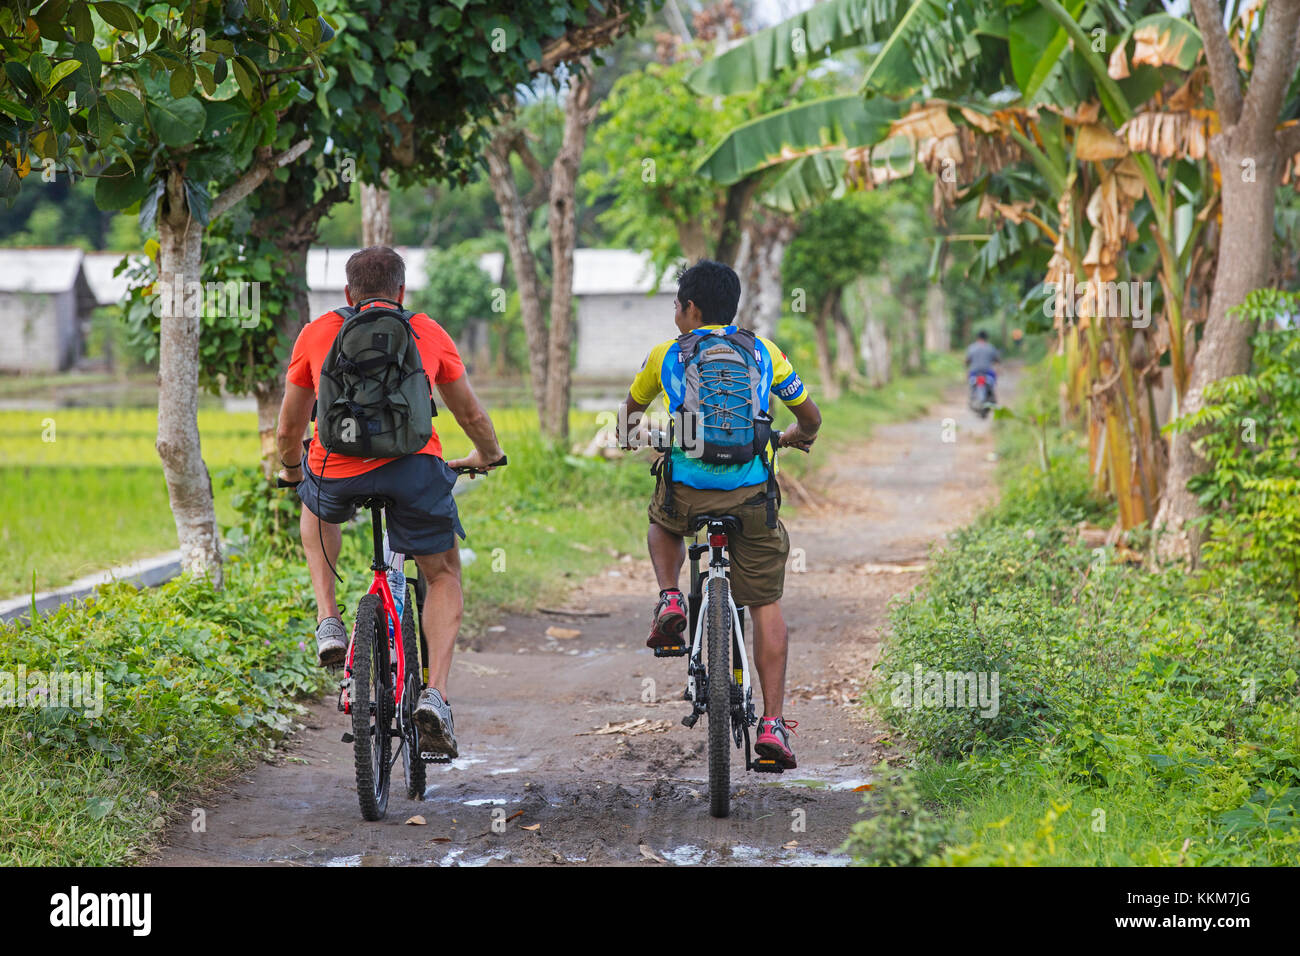 Western tourist with Indonesian guide riding mountain bikes during bicycle tour among rice fields on the island - Stock Image